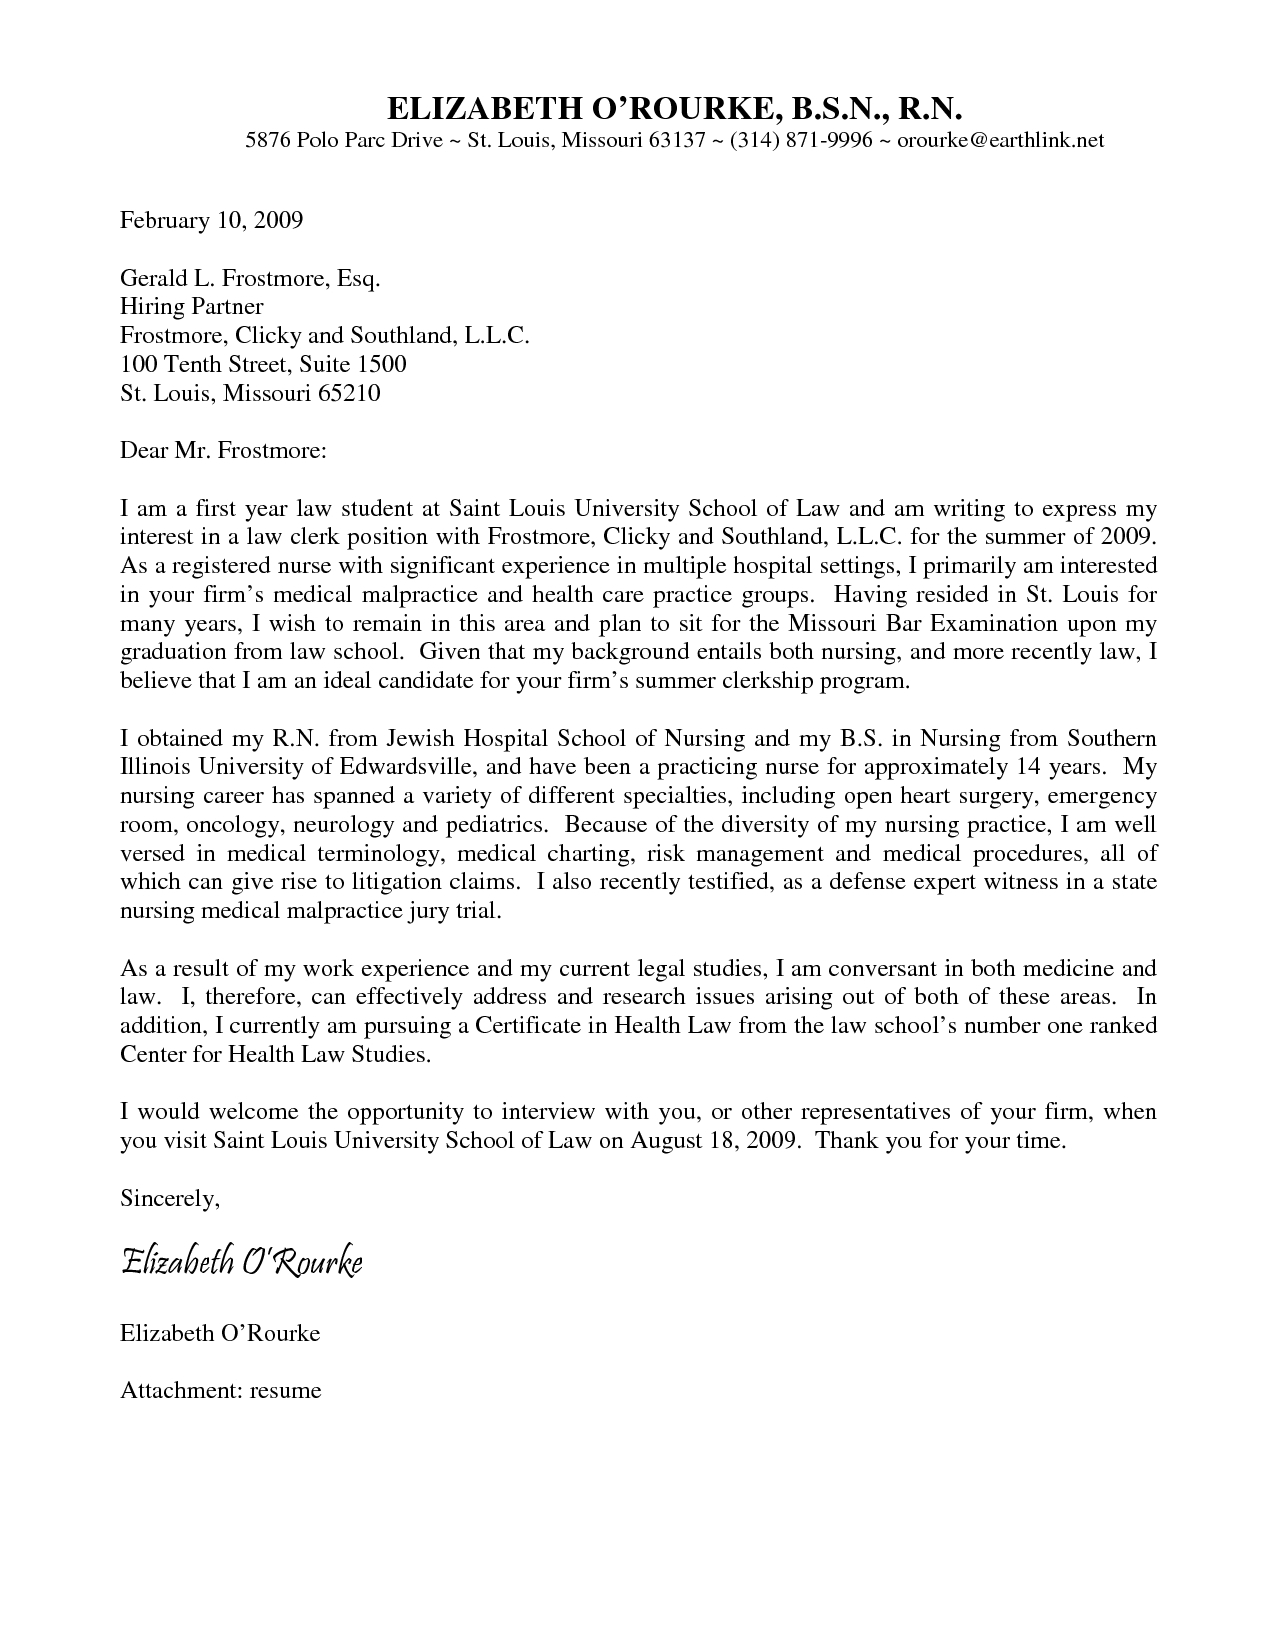 Sorority Cover Letter Template - Letter Interest for sorority Sample Image Collections Letter